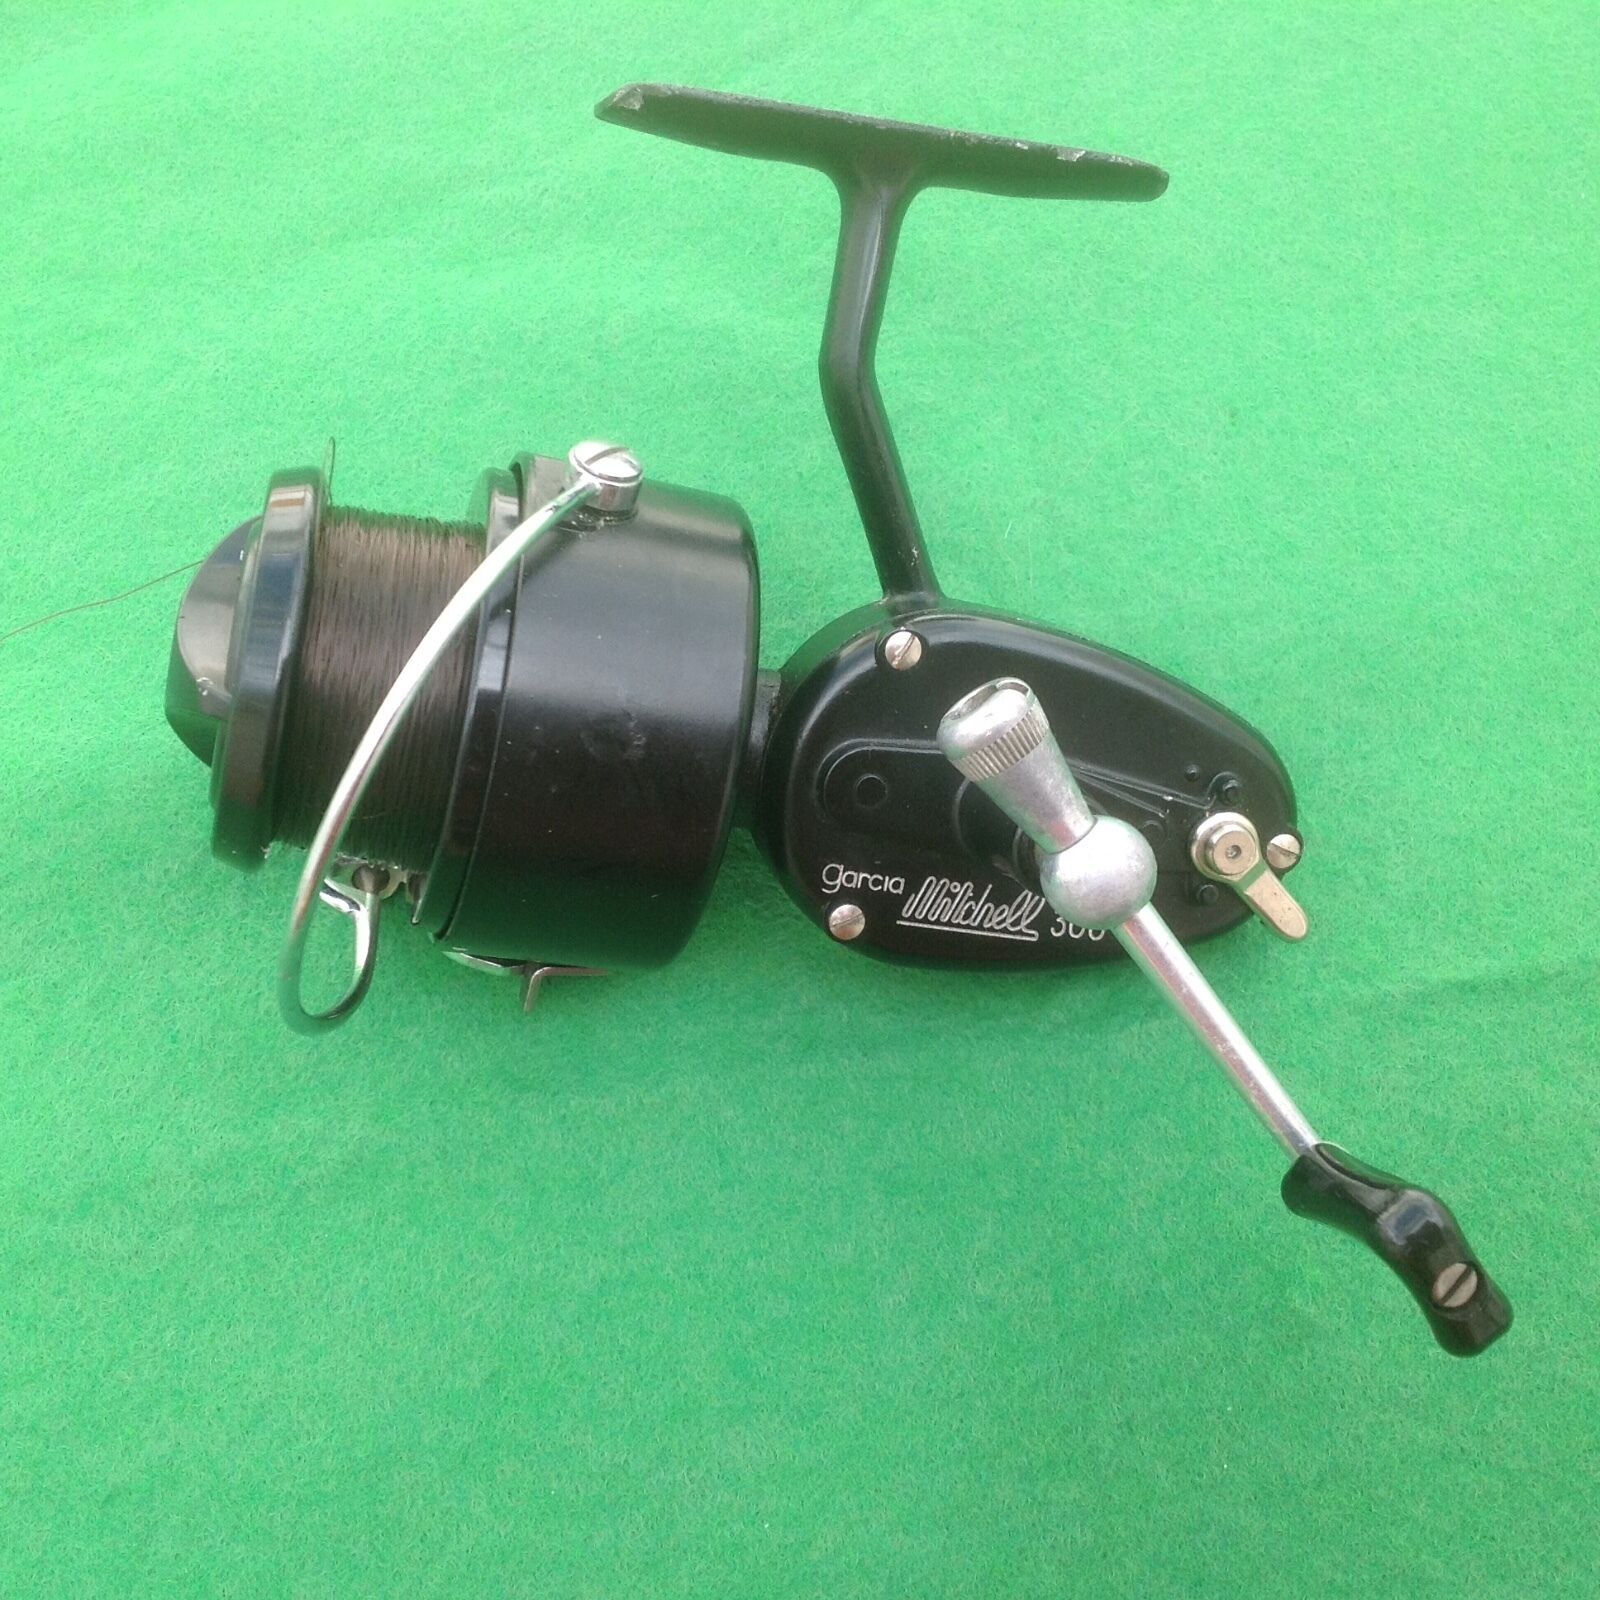 Vintage mitchell 300 fishing reel plus spare spool 24 for Old mitchell fishing reels